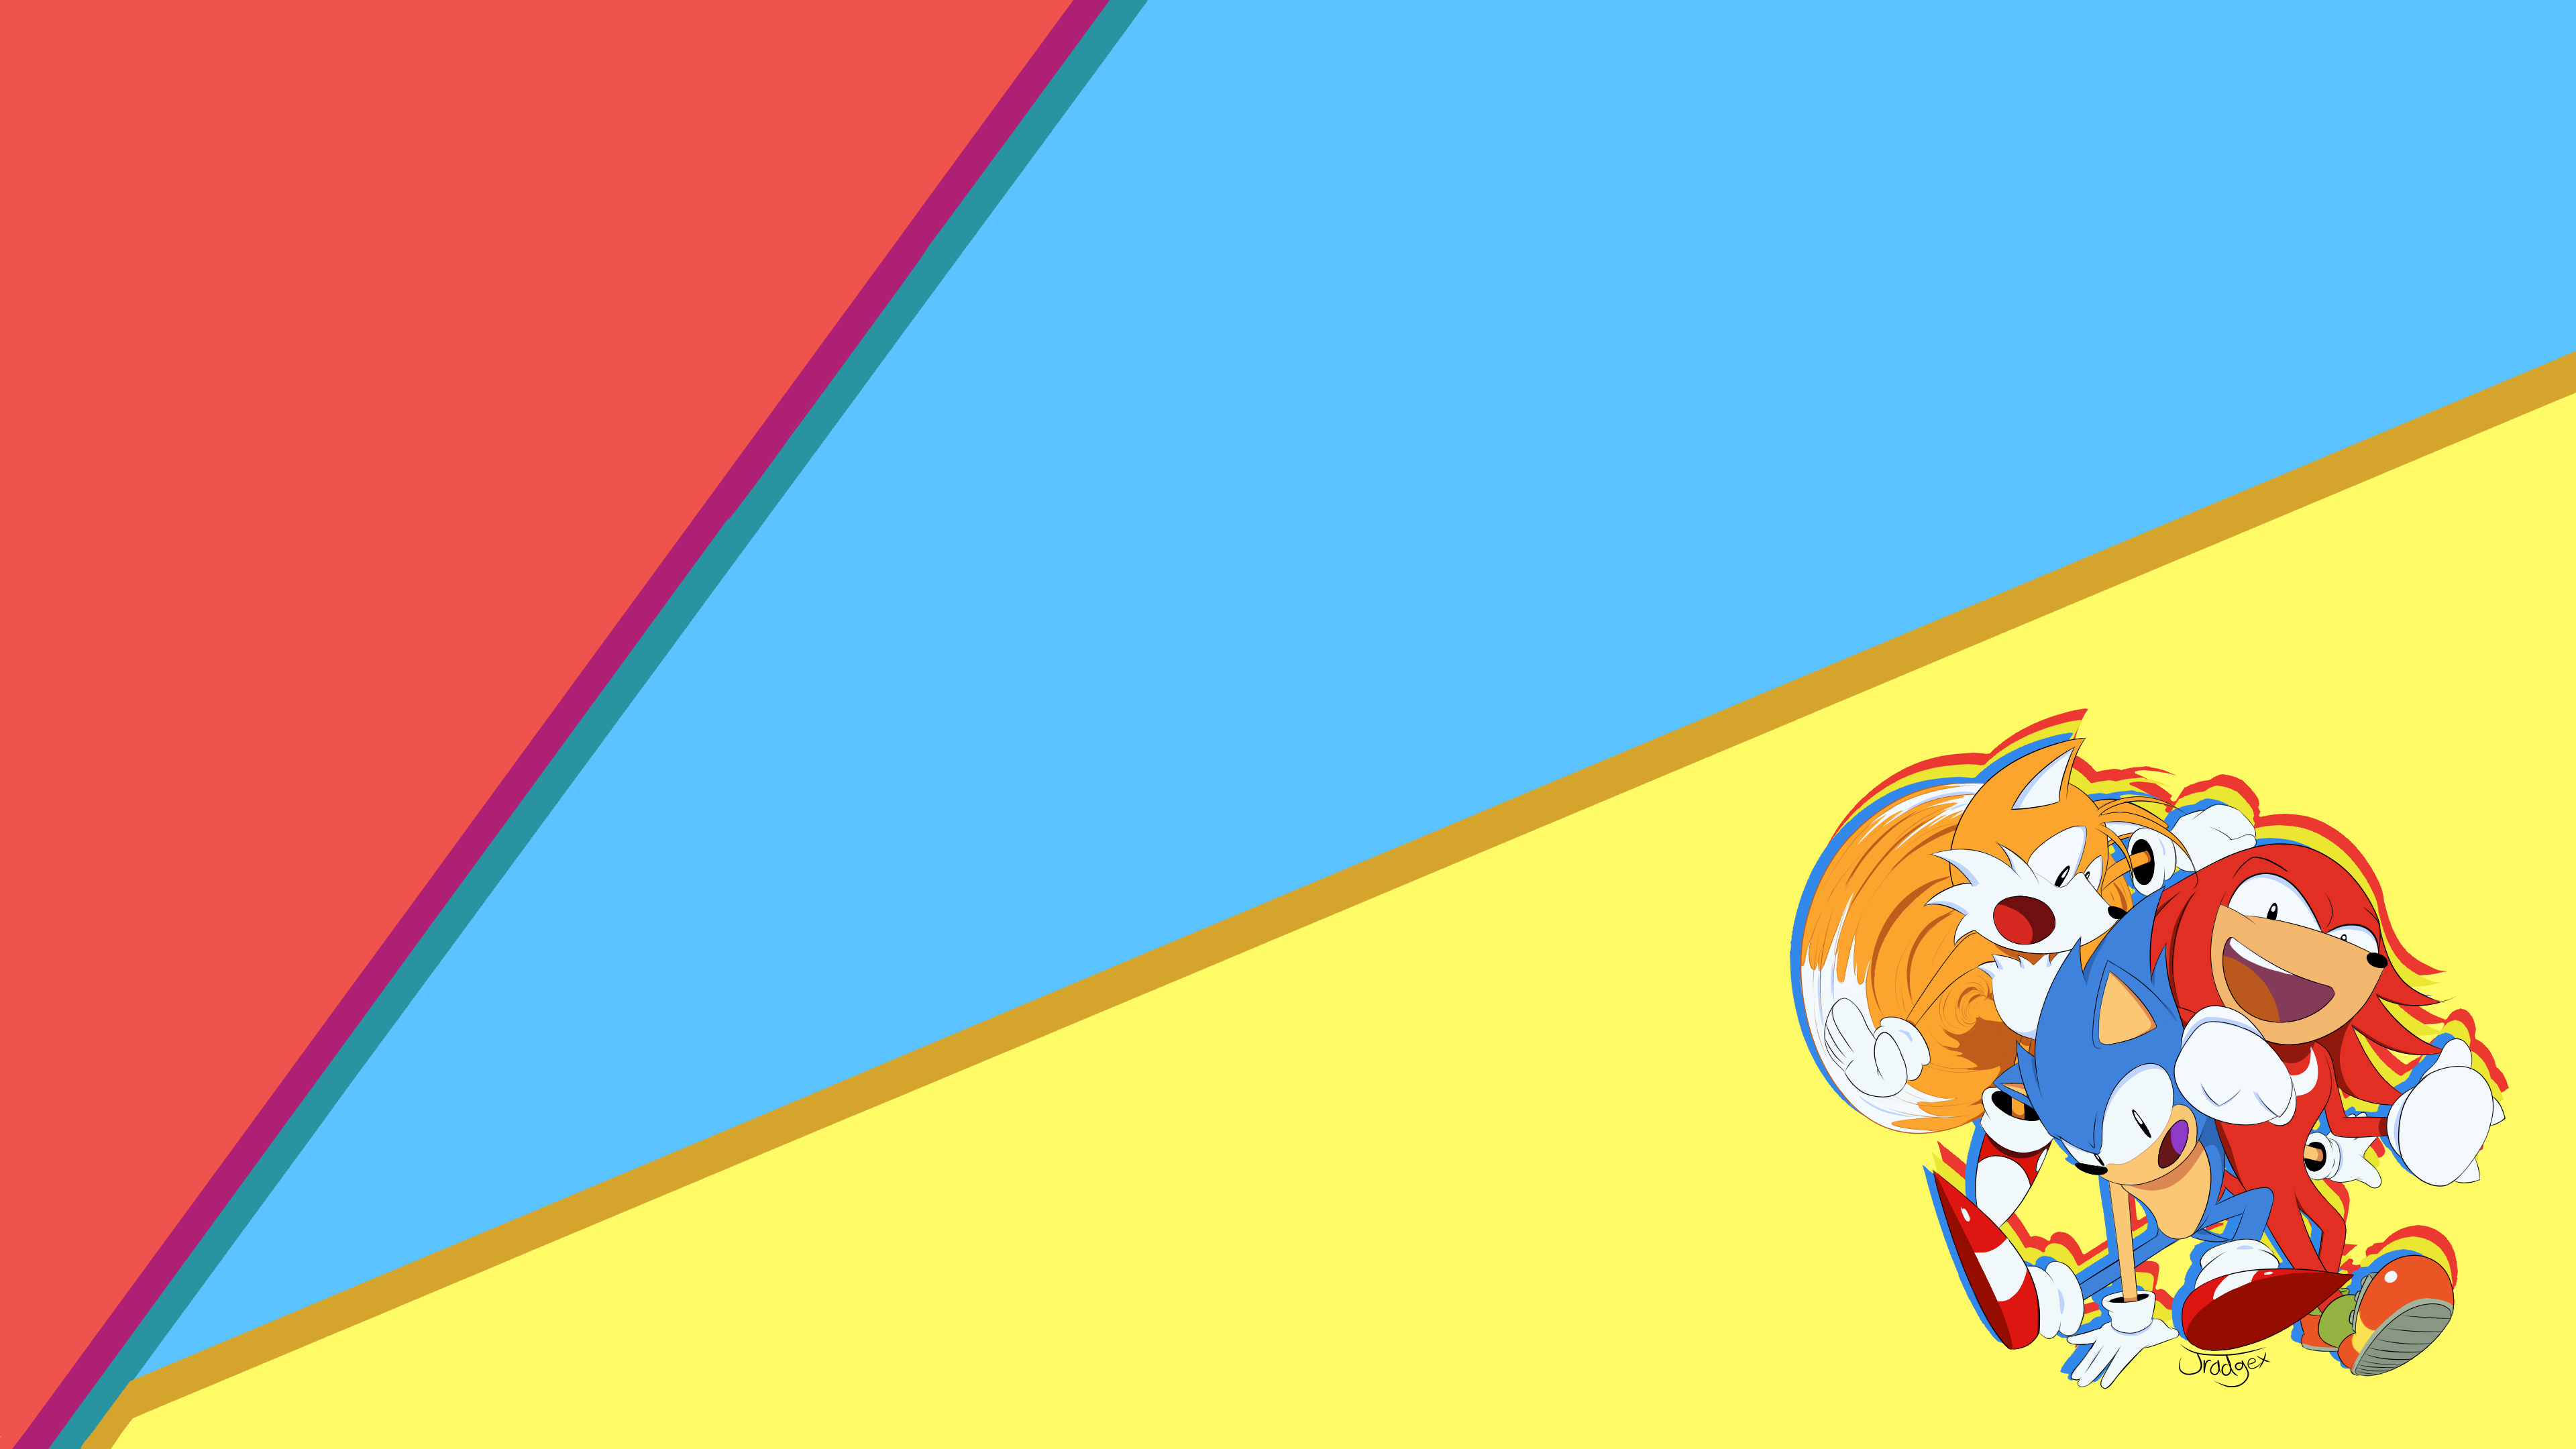 Sonic Mania Wallpaper! (4K) by Jradgex on Newgrounds